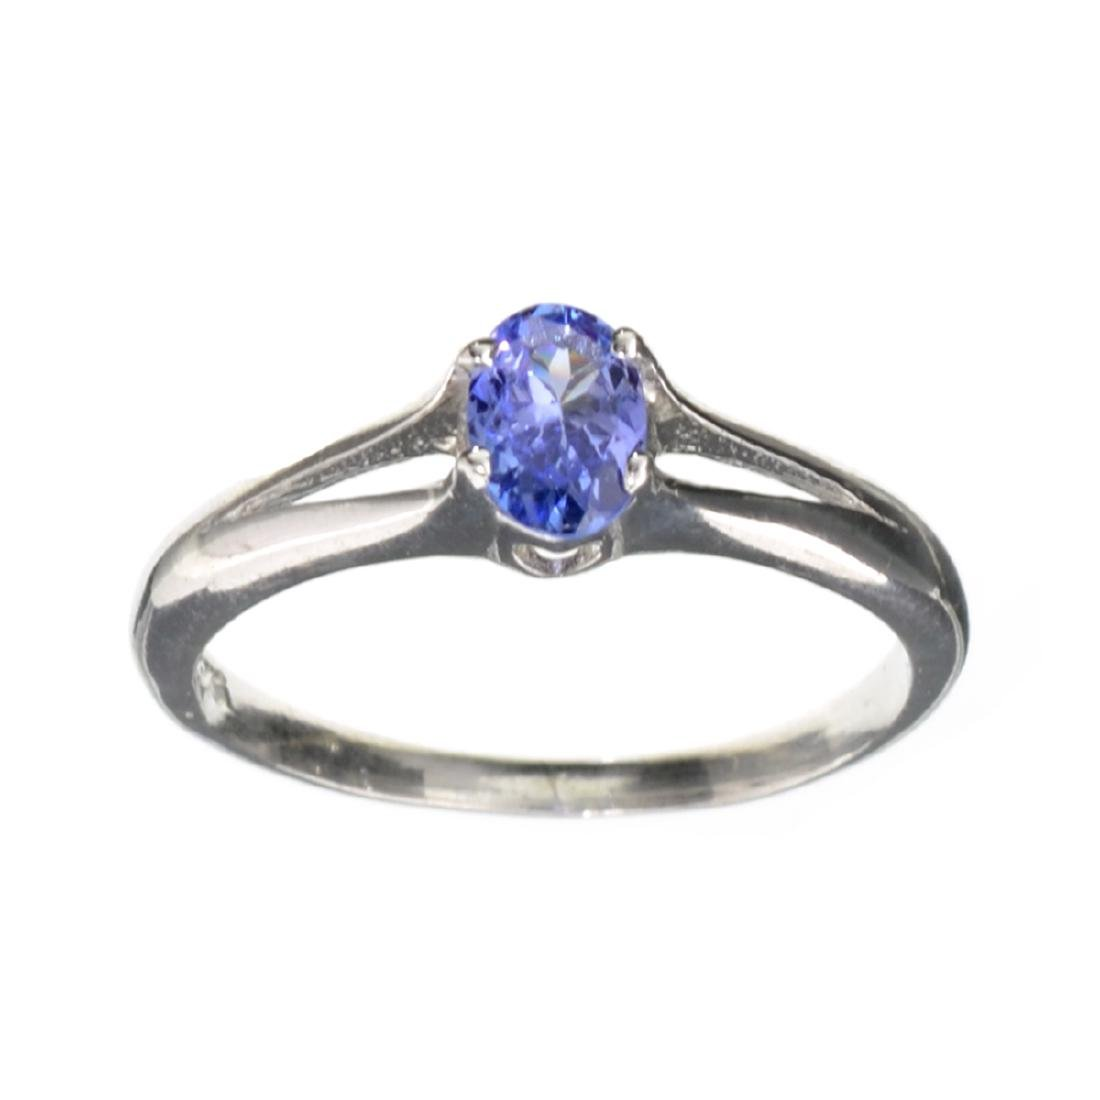 APP: 1k 0.44CT Oval Cut Tanzanite And Platinum Over